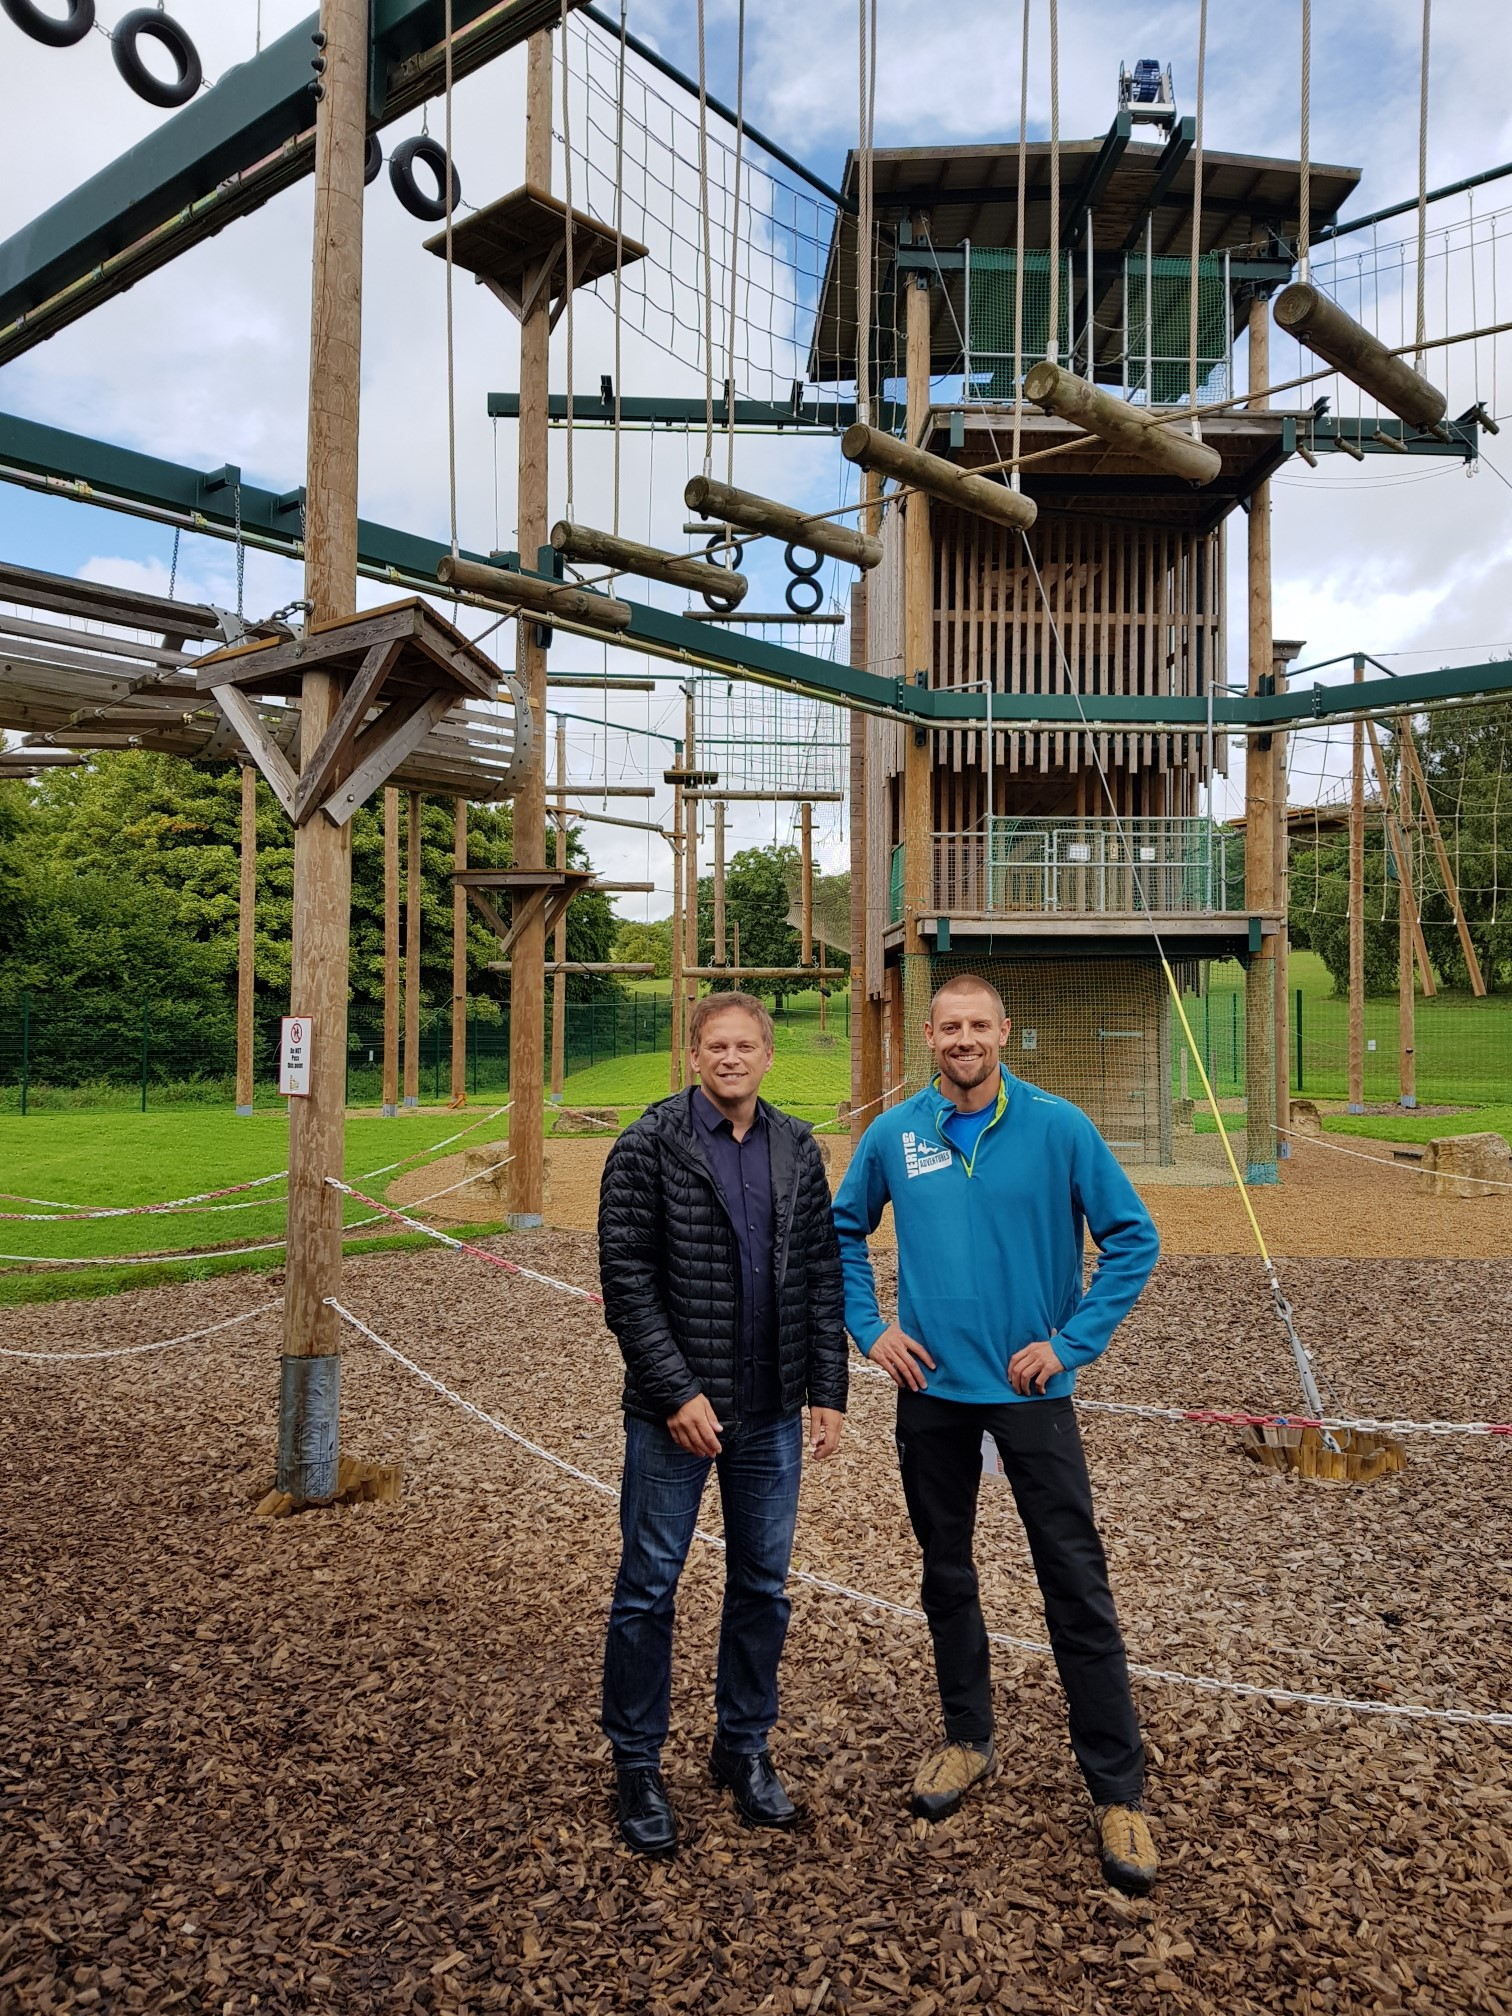 Grant visits Vertigo Adventures at Stanborough Park